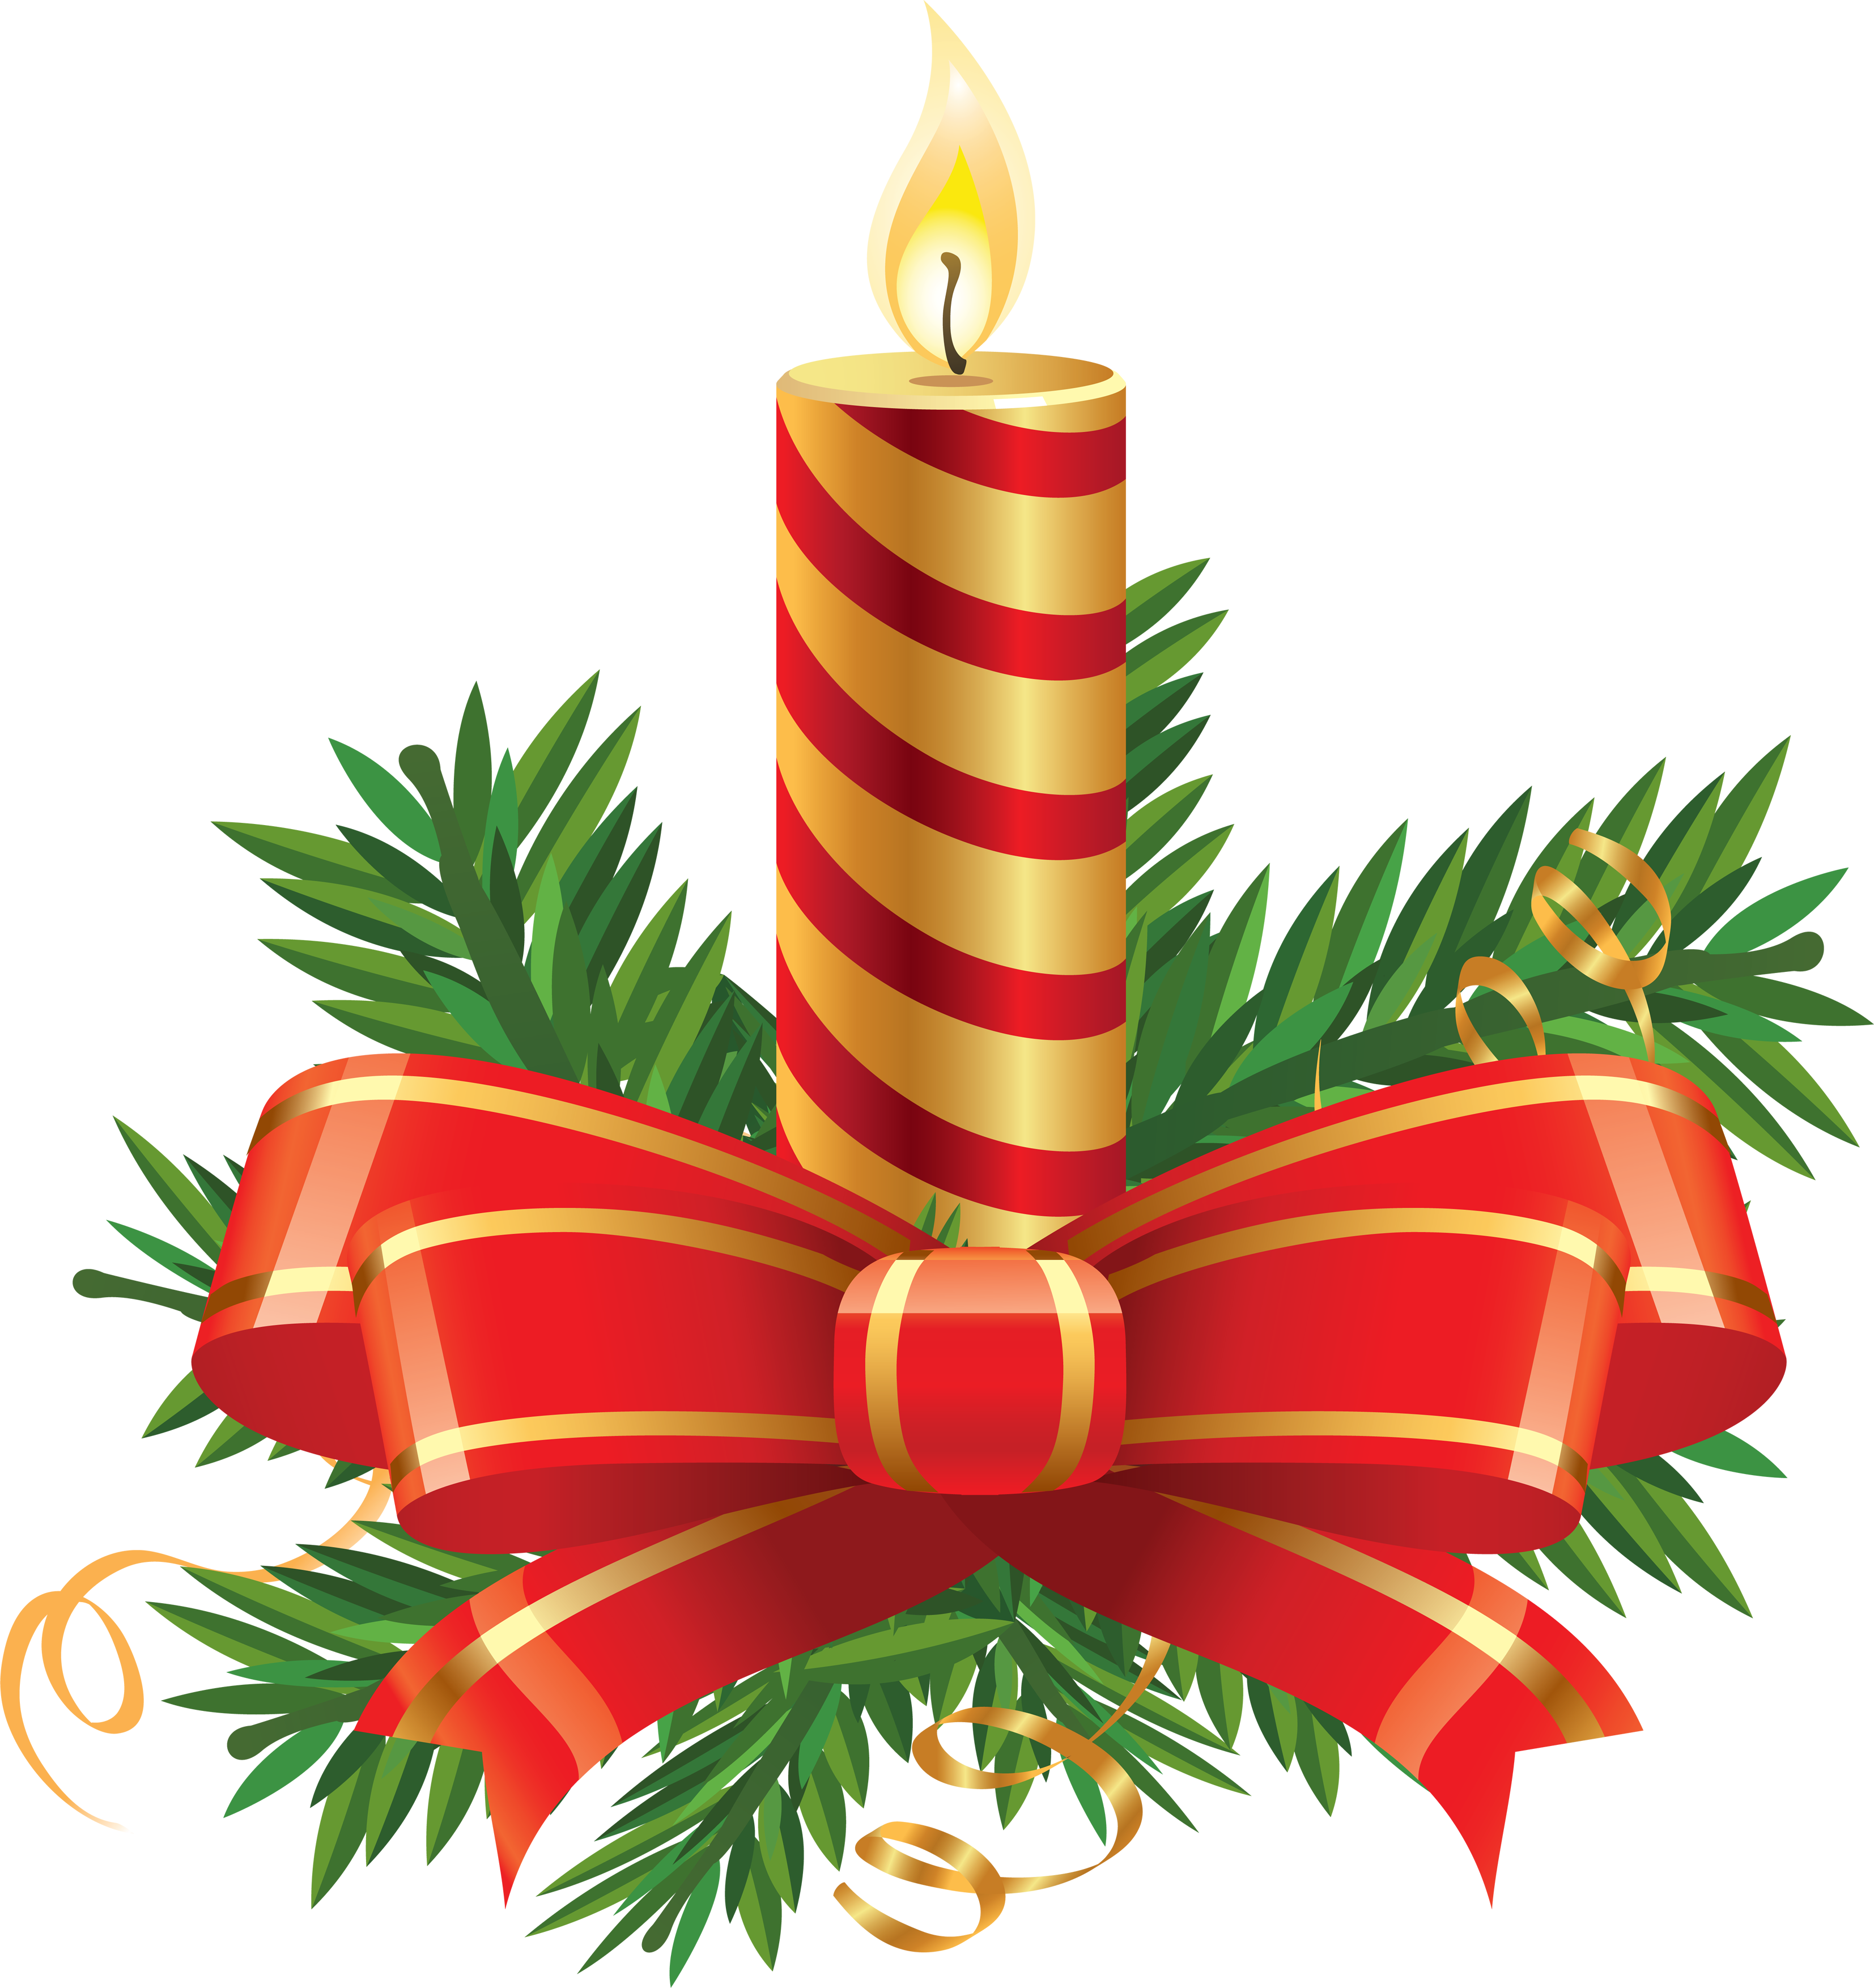 Striped Christmas Candle with Big Bow  PNG Image